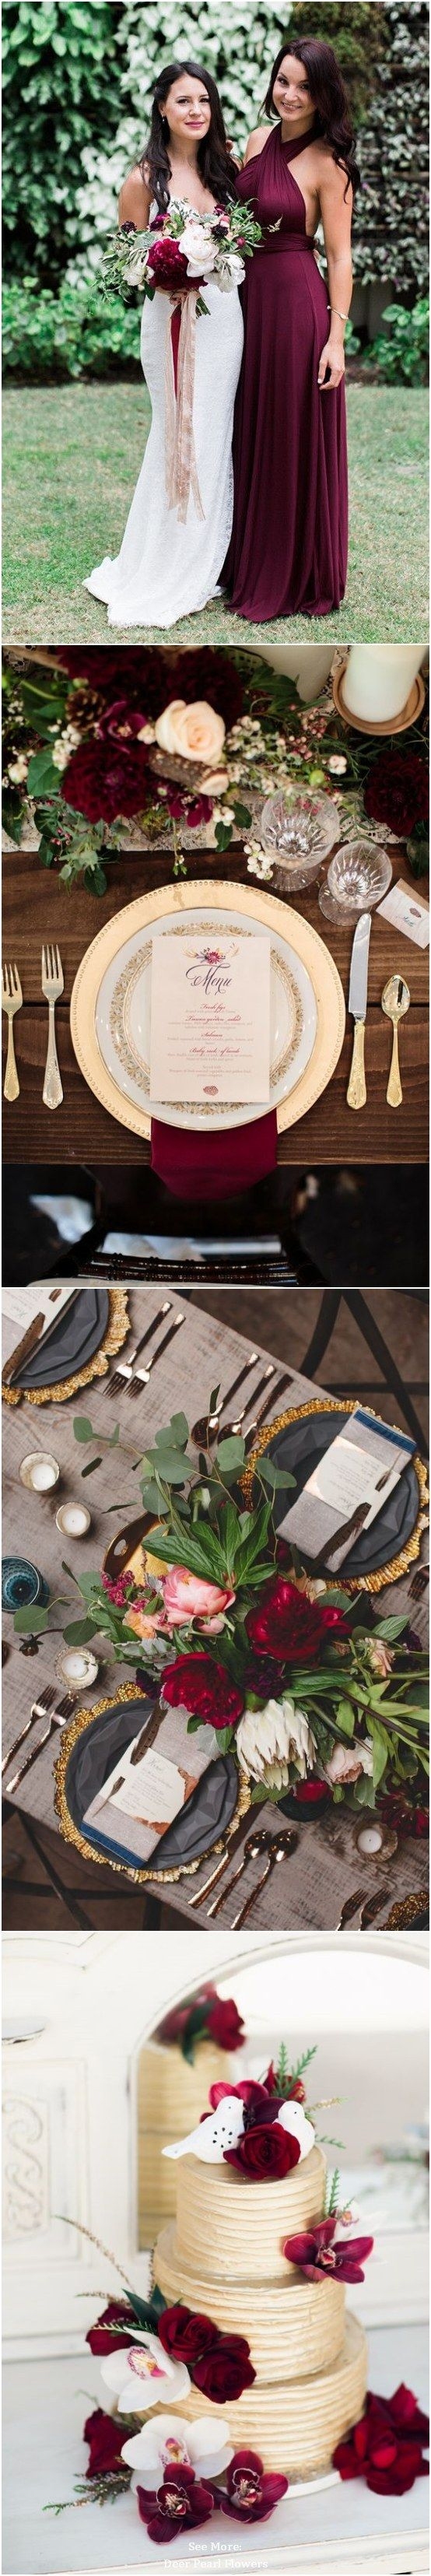 Outside fall wedding decorations february 2019 burgundy and gold fall wedding color ideas